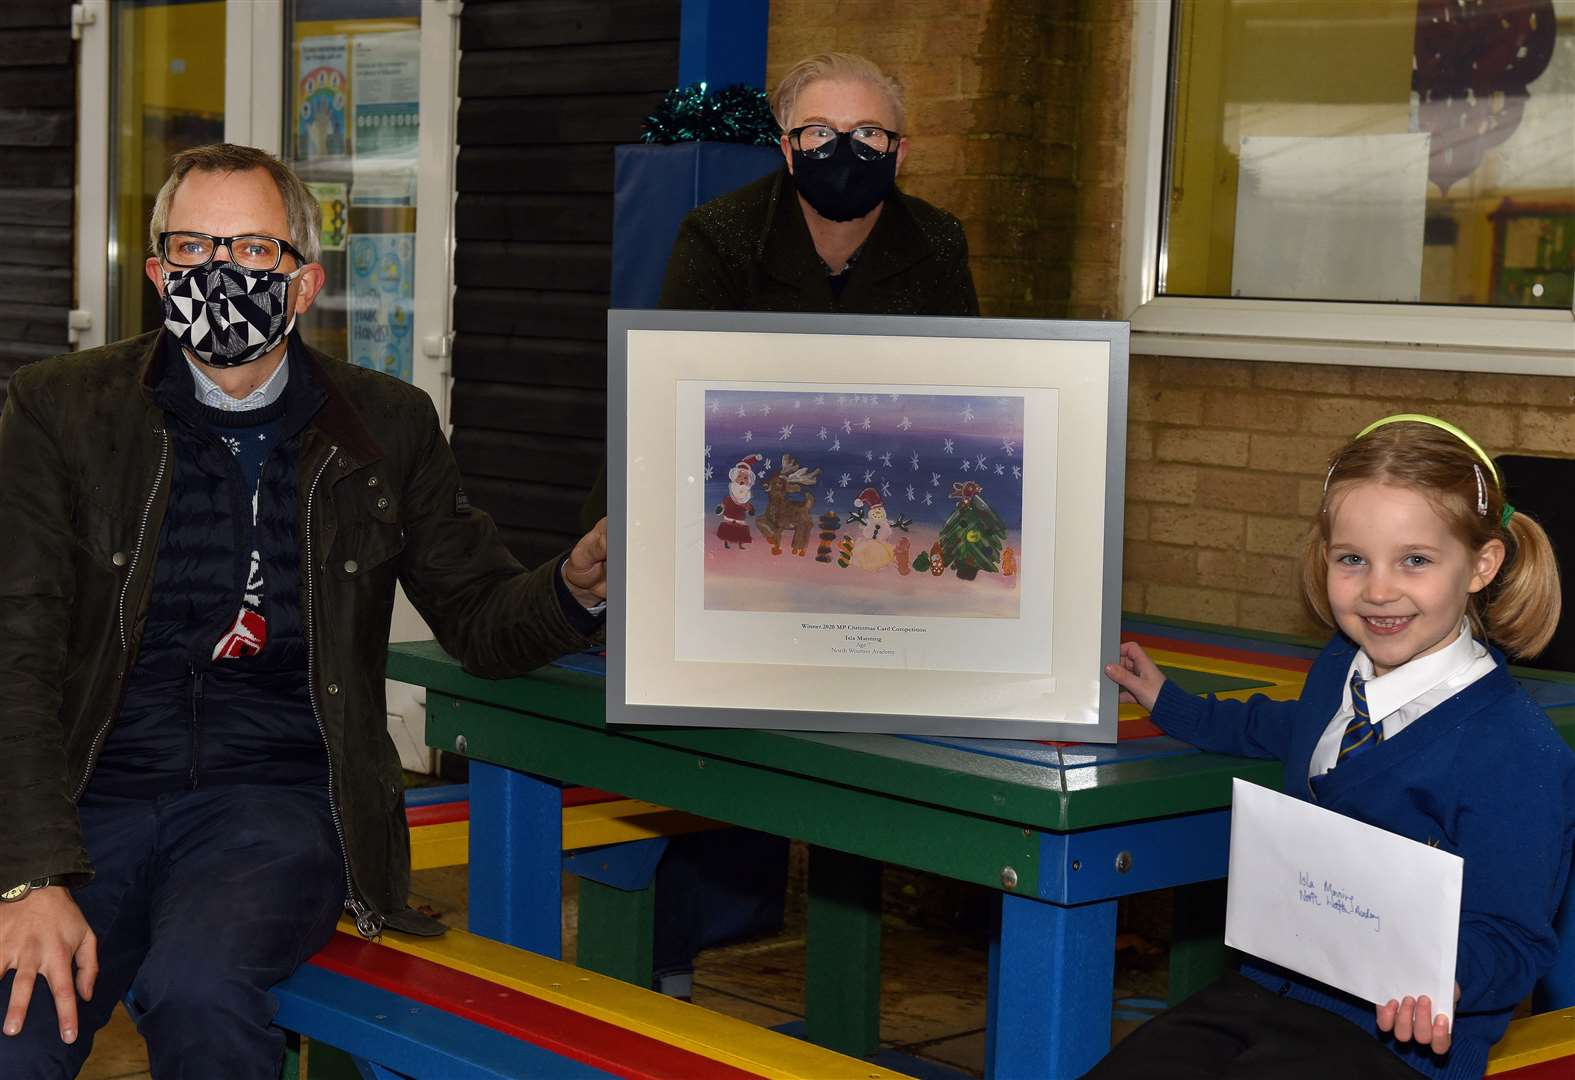 The presentation to Christmas card competition winner at North Wootton Academy. James Wild MP presents a framed print of the winning entry to the artist Isla Manning (7), also in picture is Jenny Richards (Prontaprint King's Lynn owner)